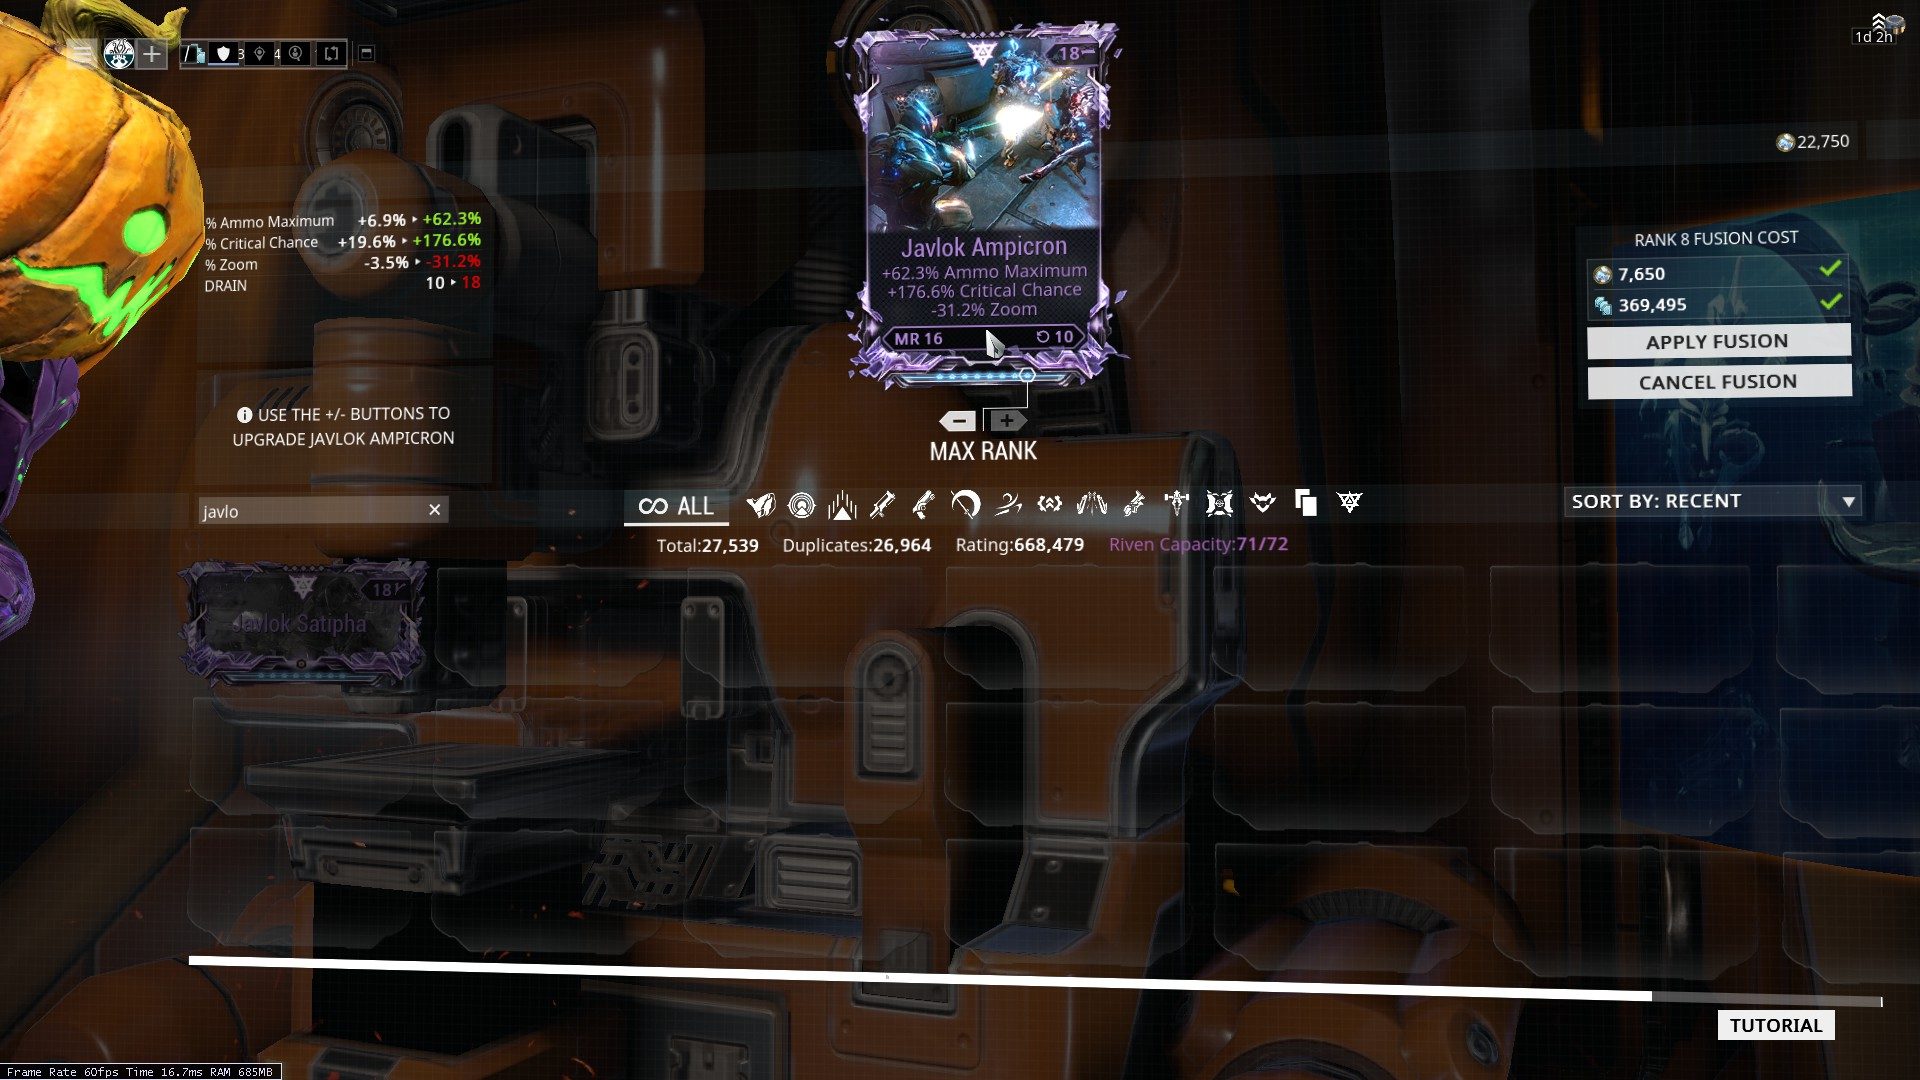 DISCONTINUE Riven Mod Price Check But Price Check Bot Is Still Working In Discord